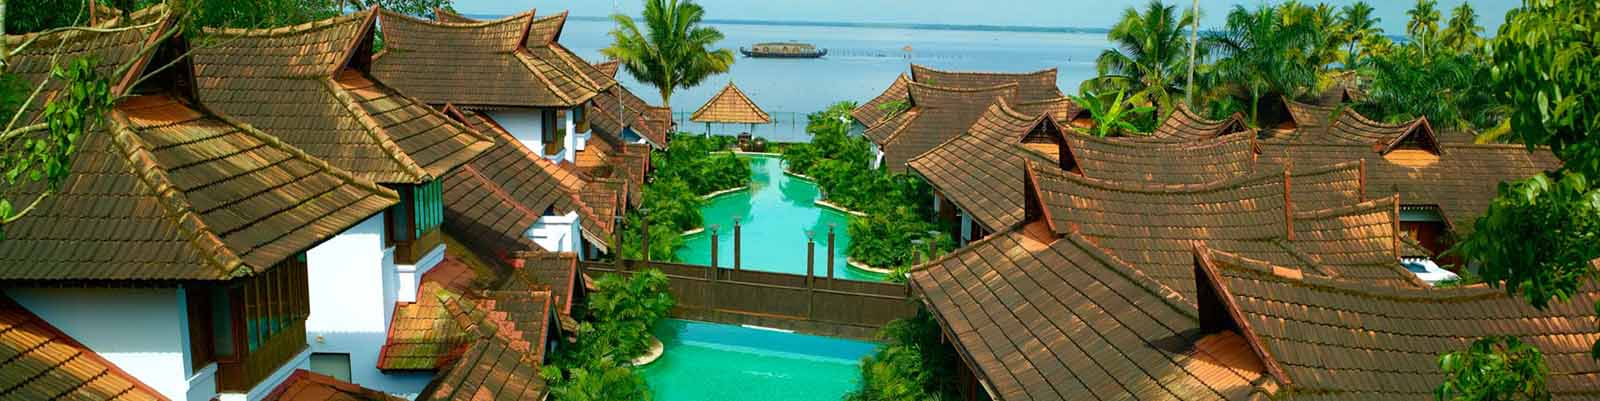 kerala tour and honeymoon packages from bangalore